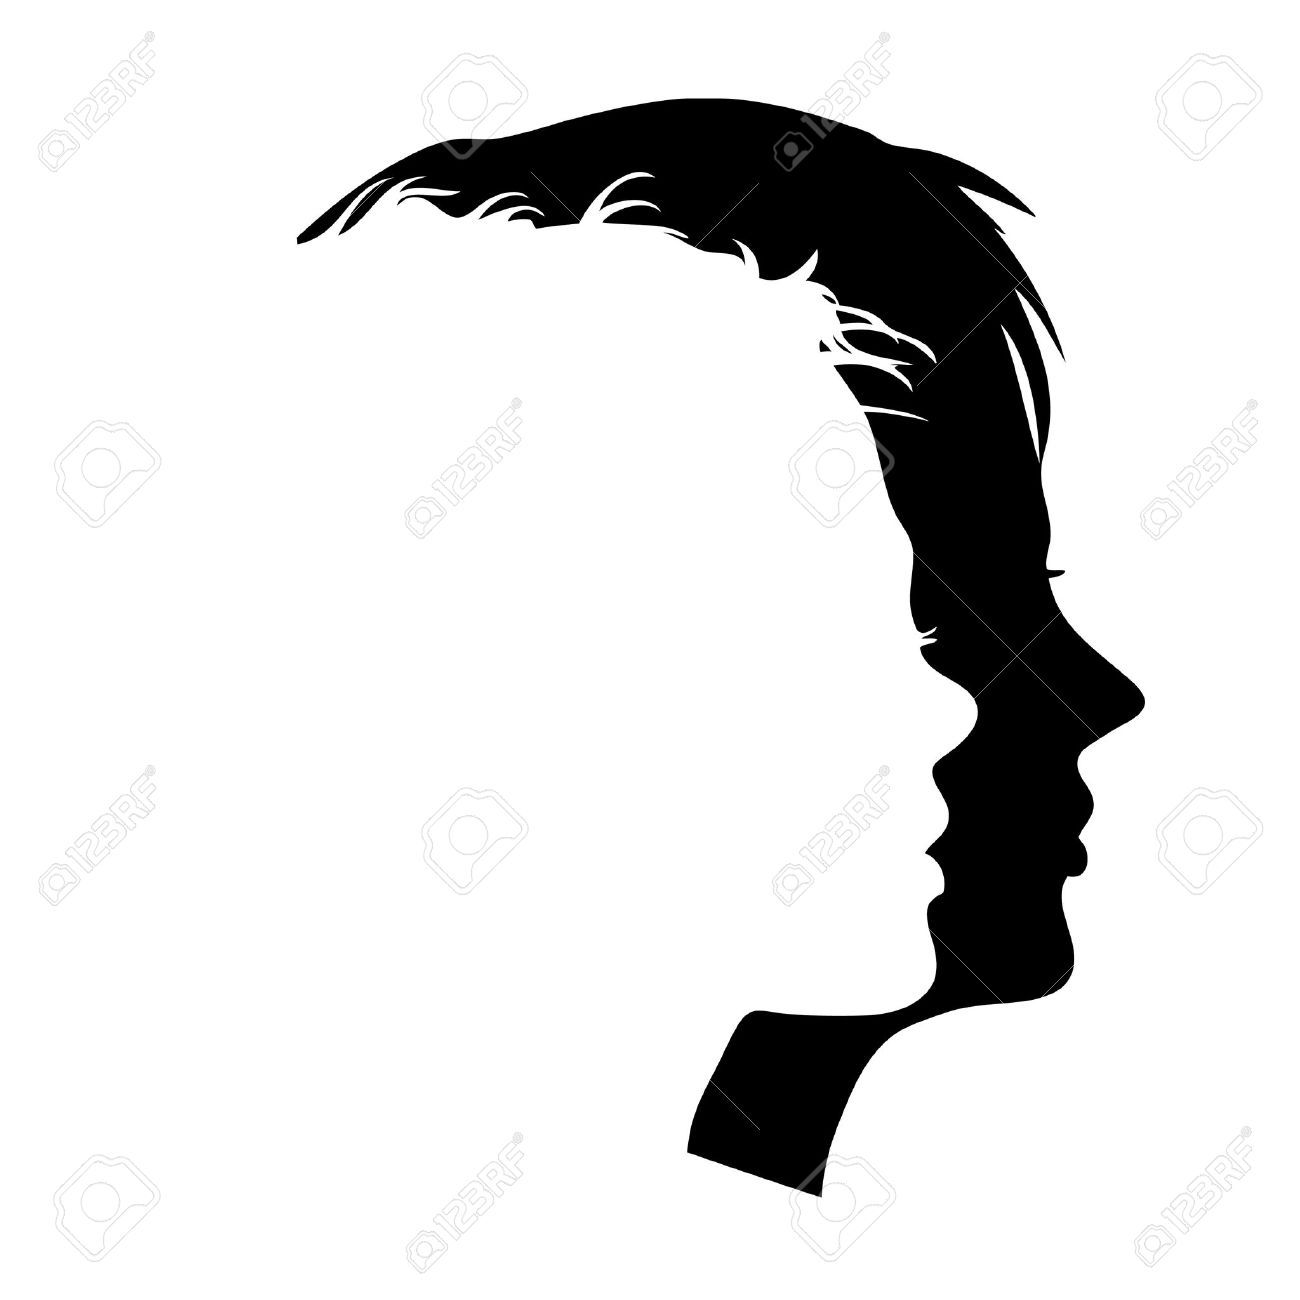 5937954 Vector Man And Woman Faces Profiles Stock Vector Man Silhouette Face Jpg 1 300 1 300 Pixels Man And Woman Silhouette Face Profile Silhouette Face